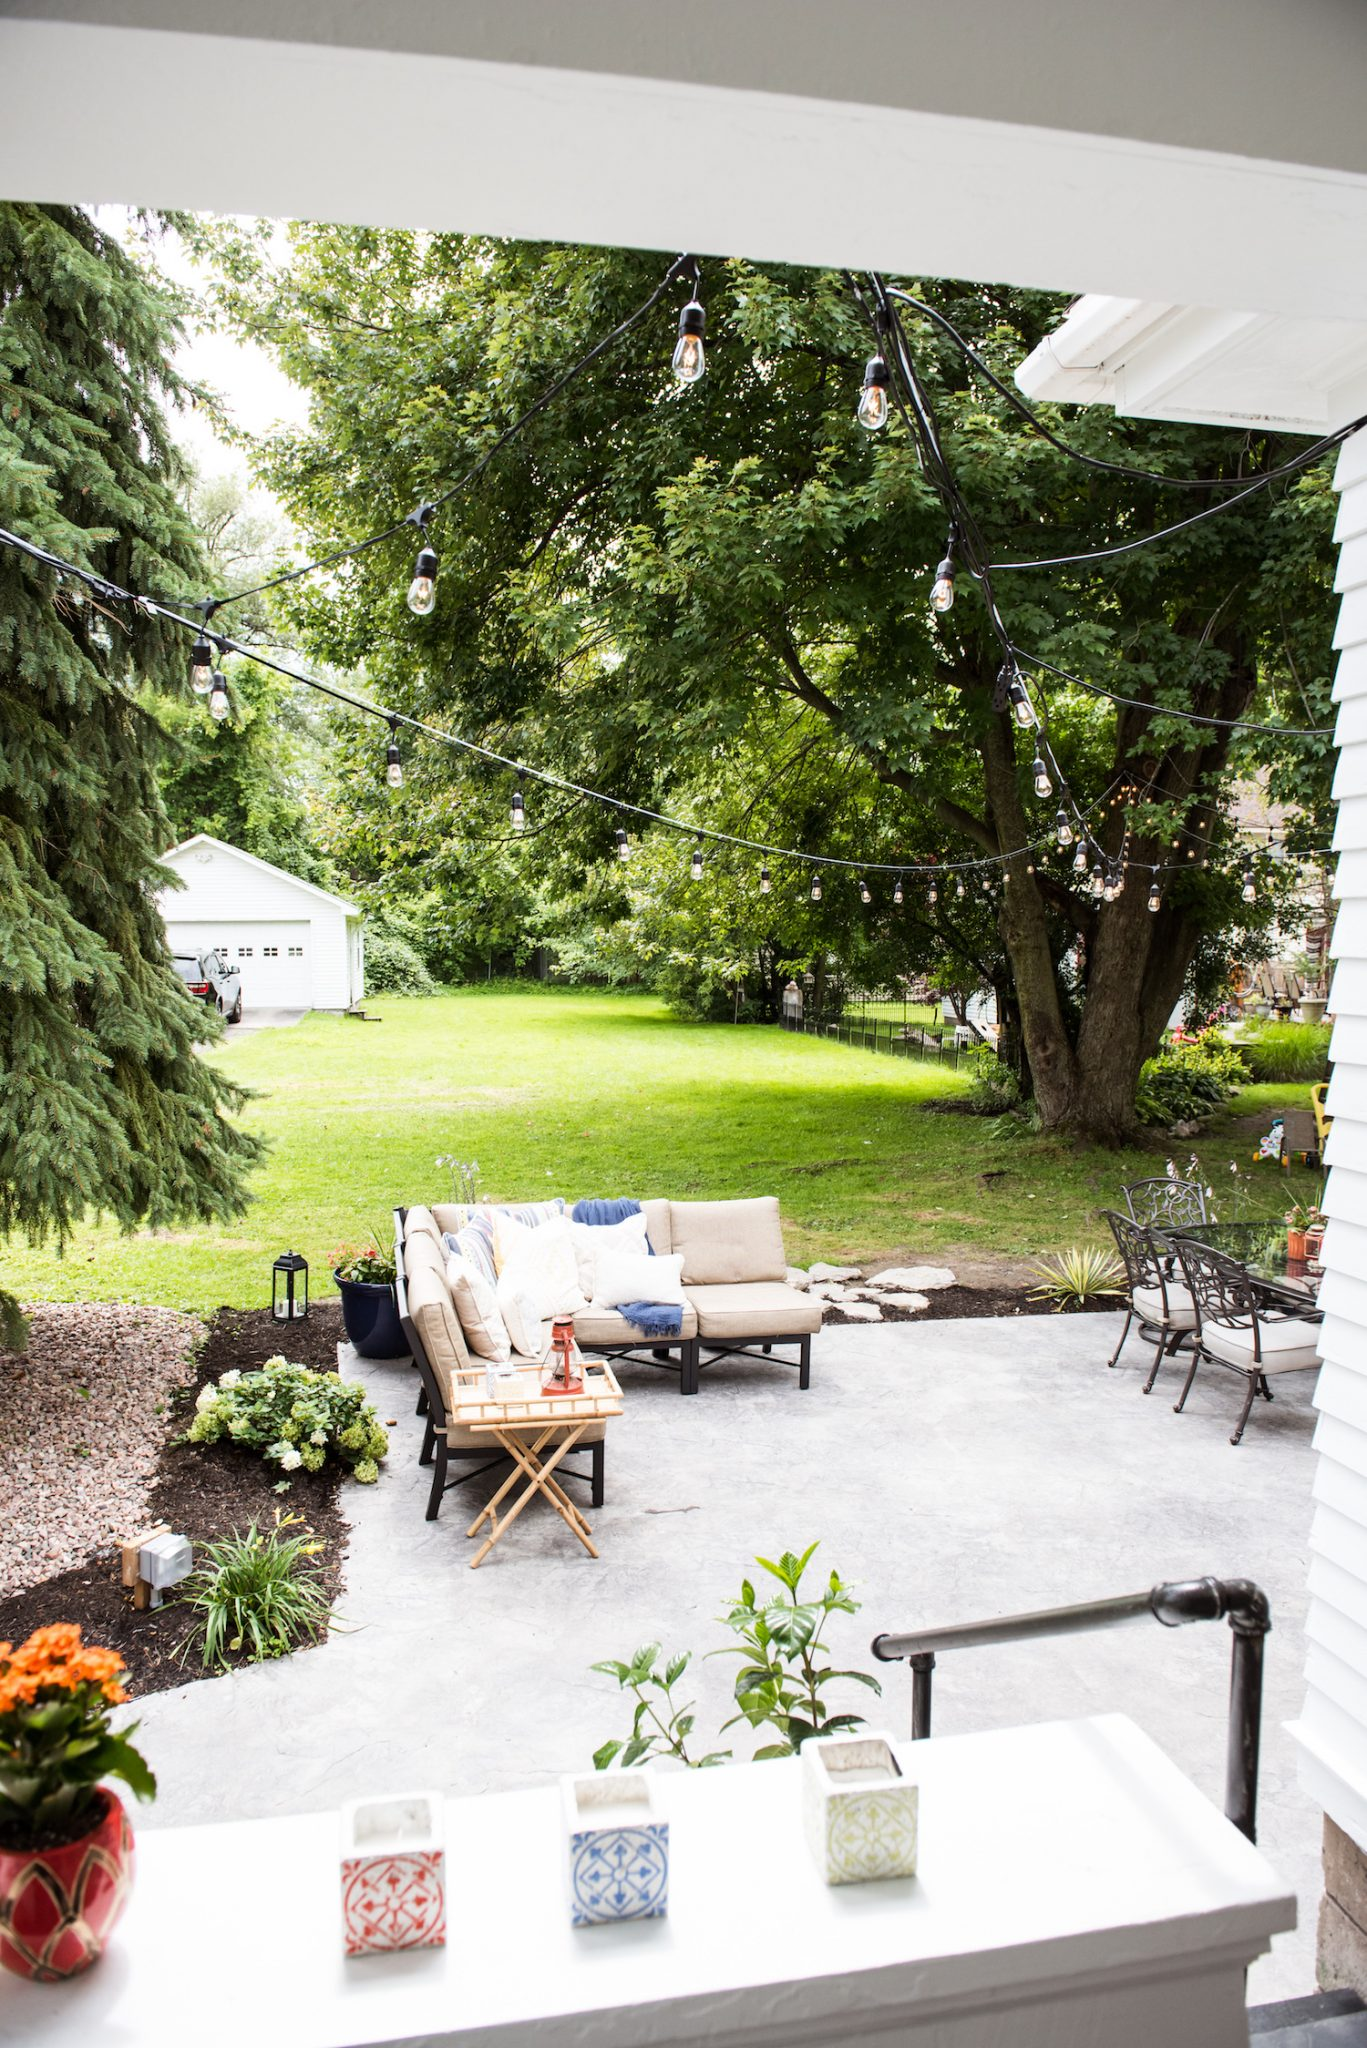 The Sweetest Occasion's Backyard Makeover | Home decor, home renovation ideas, patio ideas and more from @cydconverse